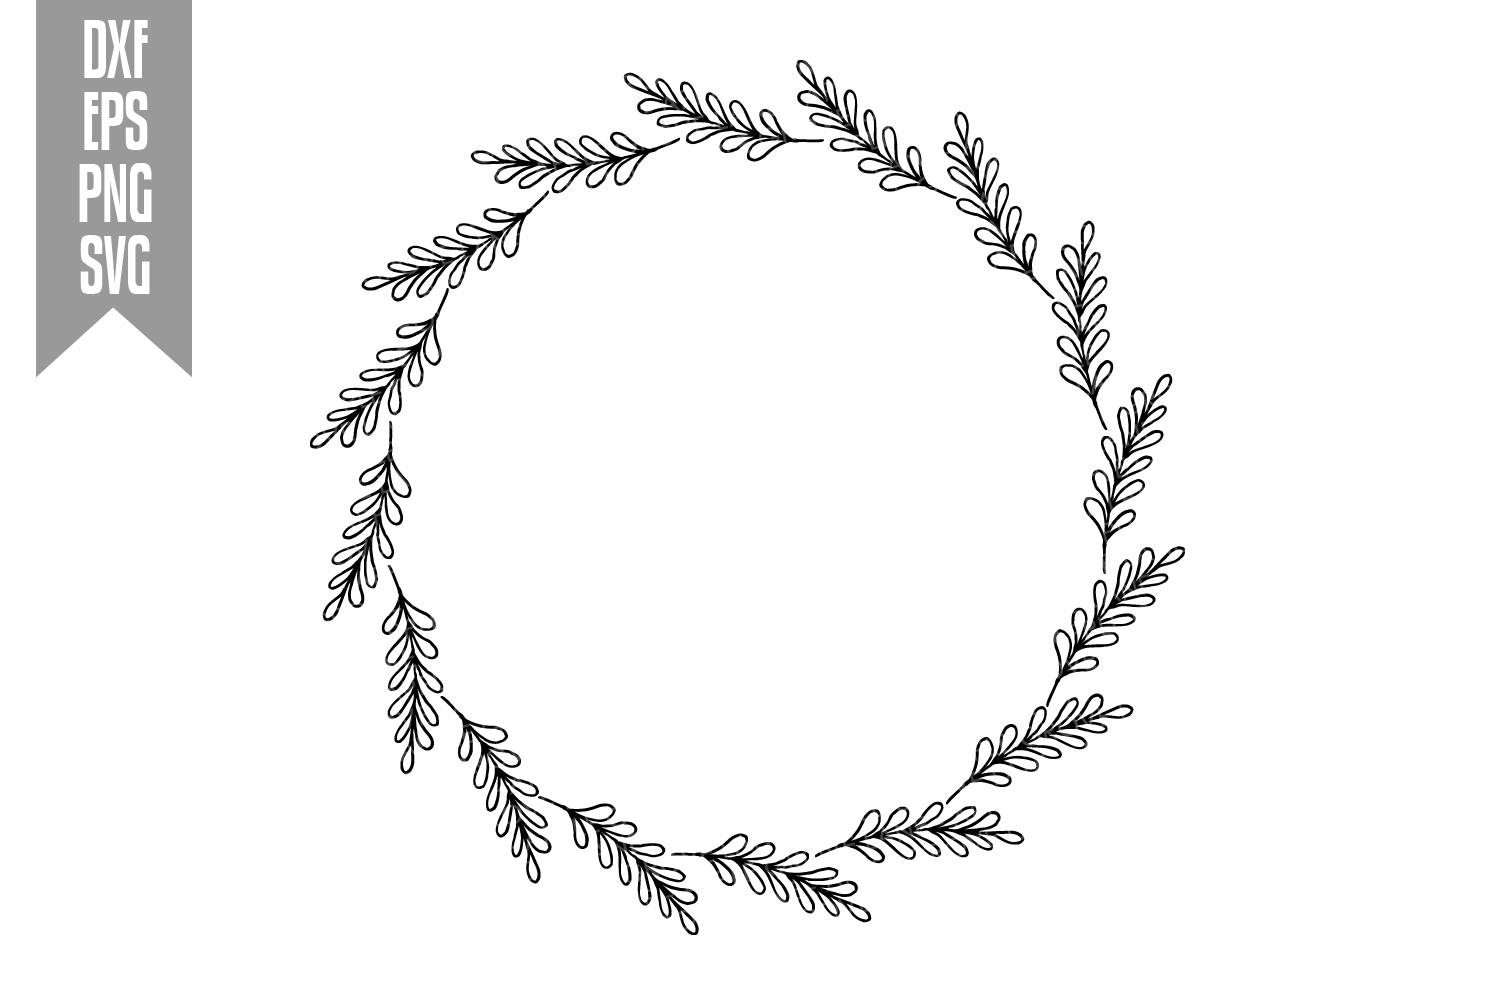 Wreath Svg Bundle - 6 designs included - Svg Cut Files example image 10